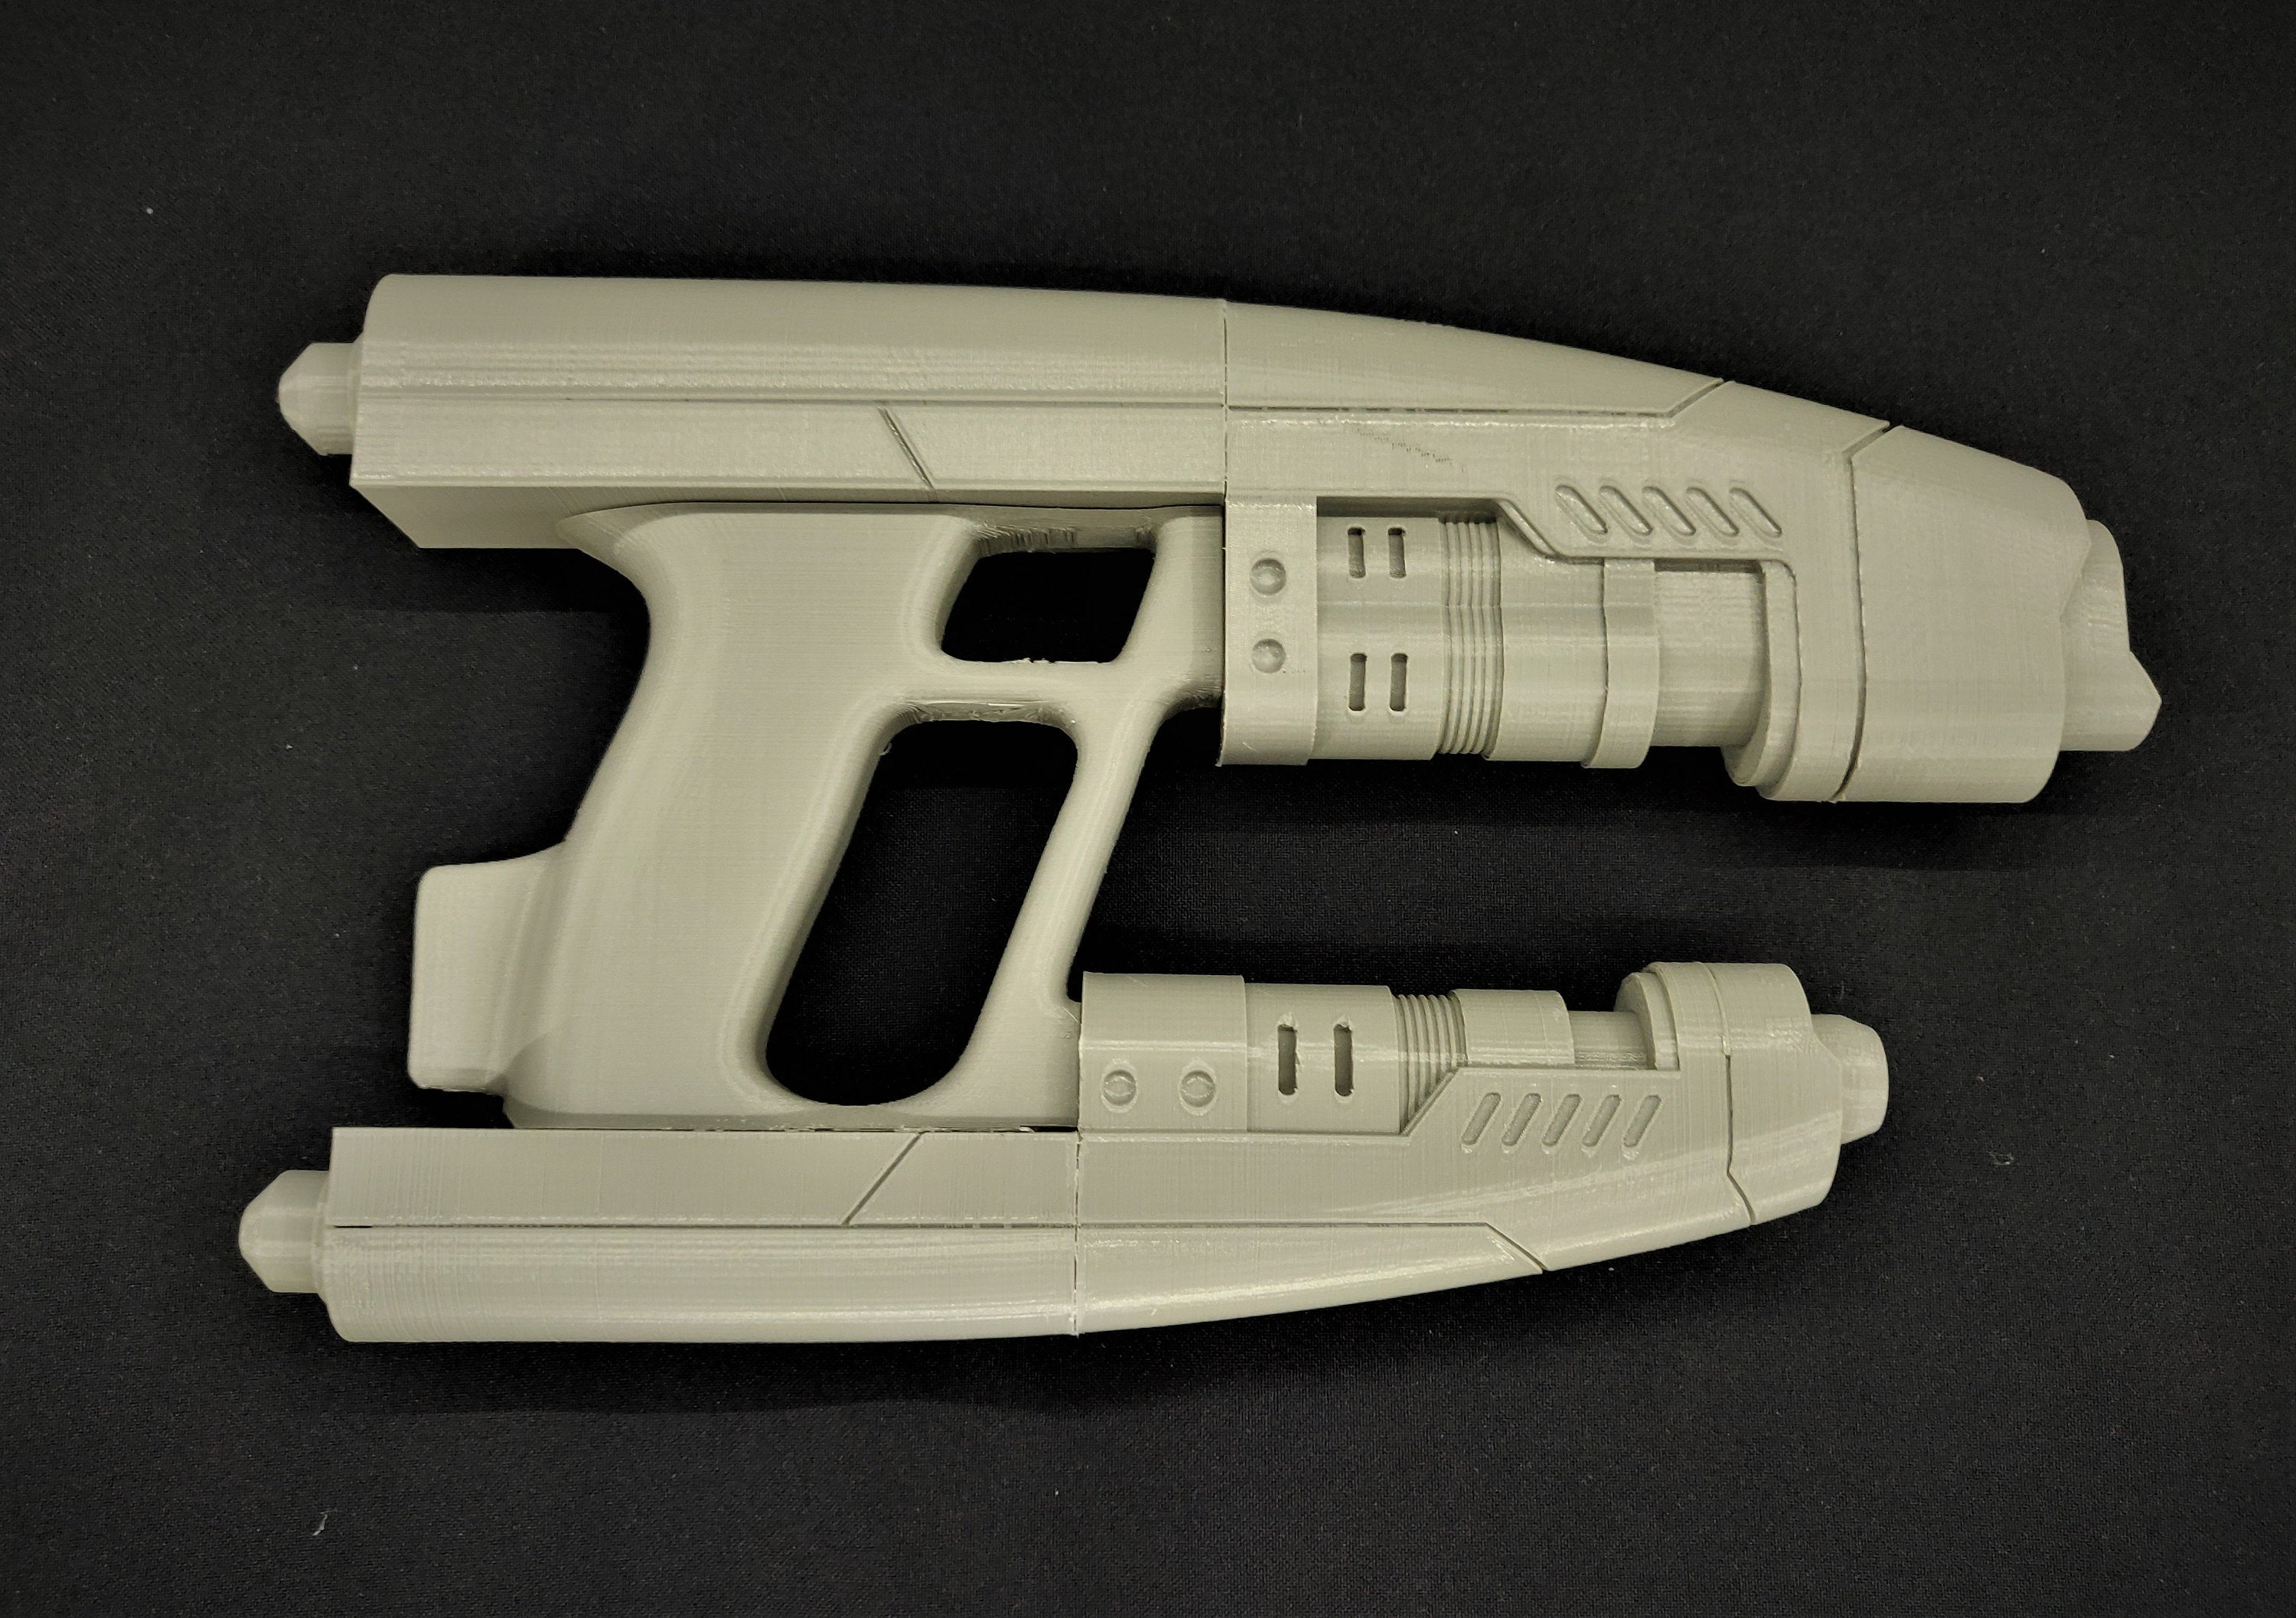 Star-Lord Element Blaster - Avengers: Endgame Replica Prop - 3D Printed